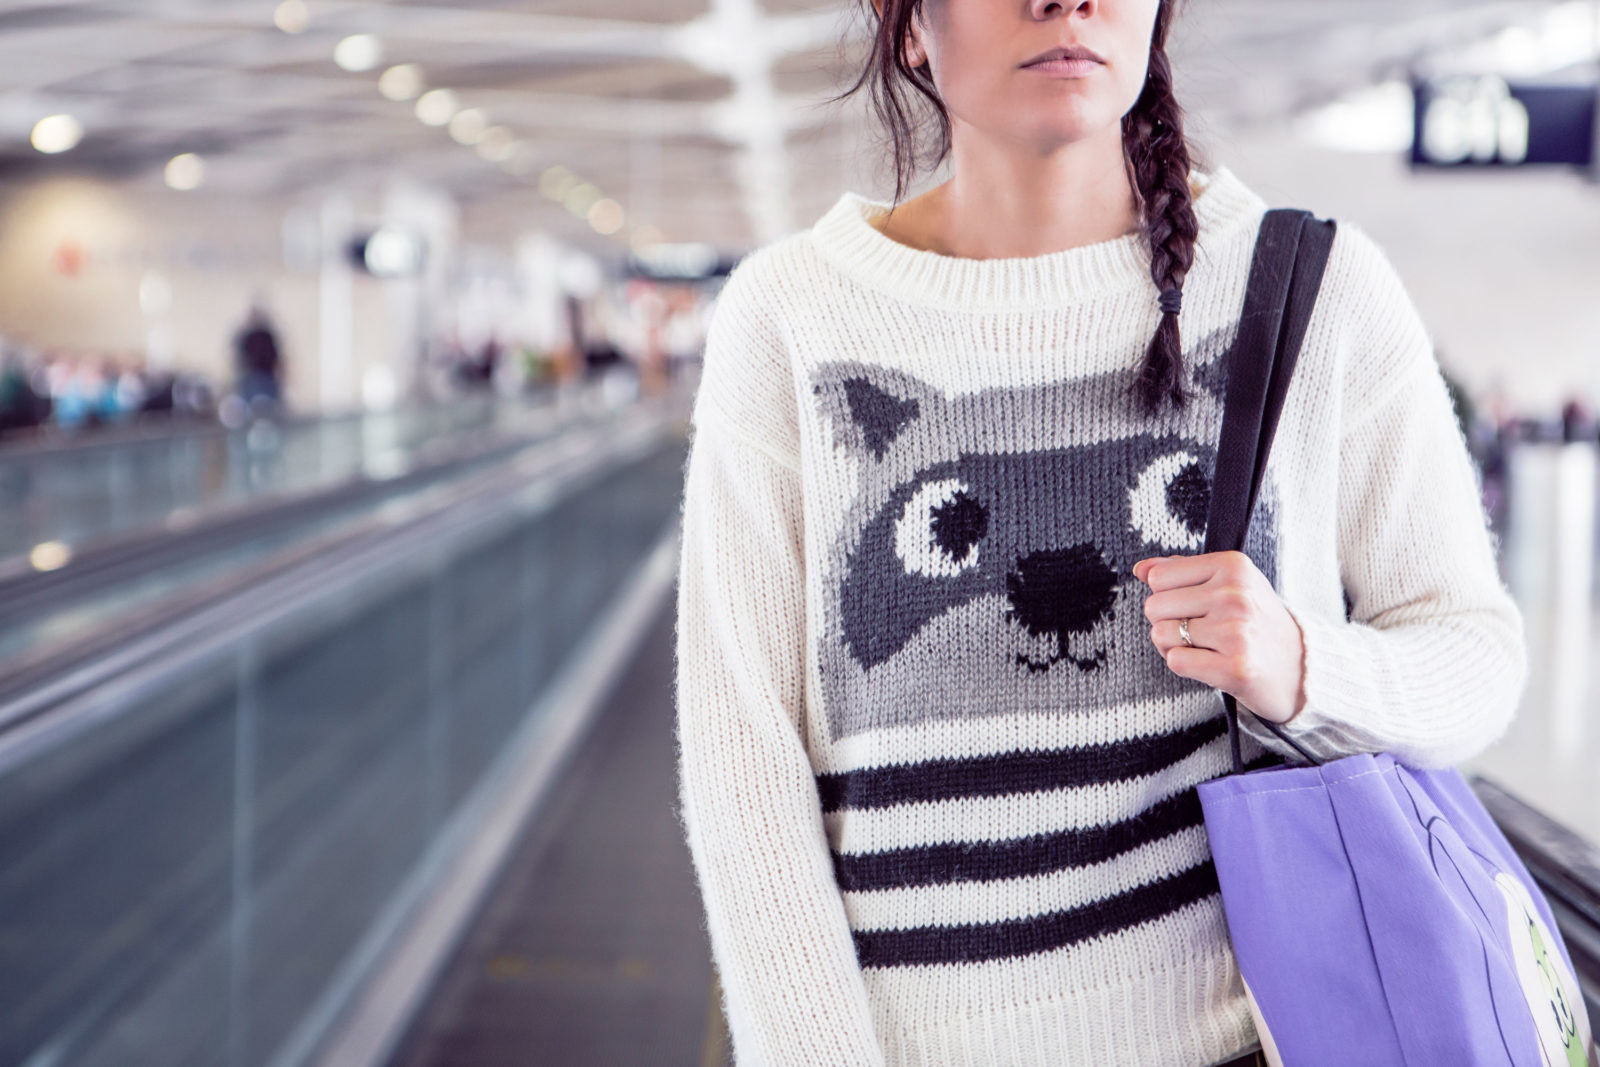 Woman at an airport